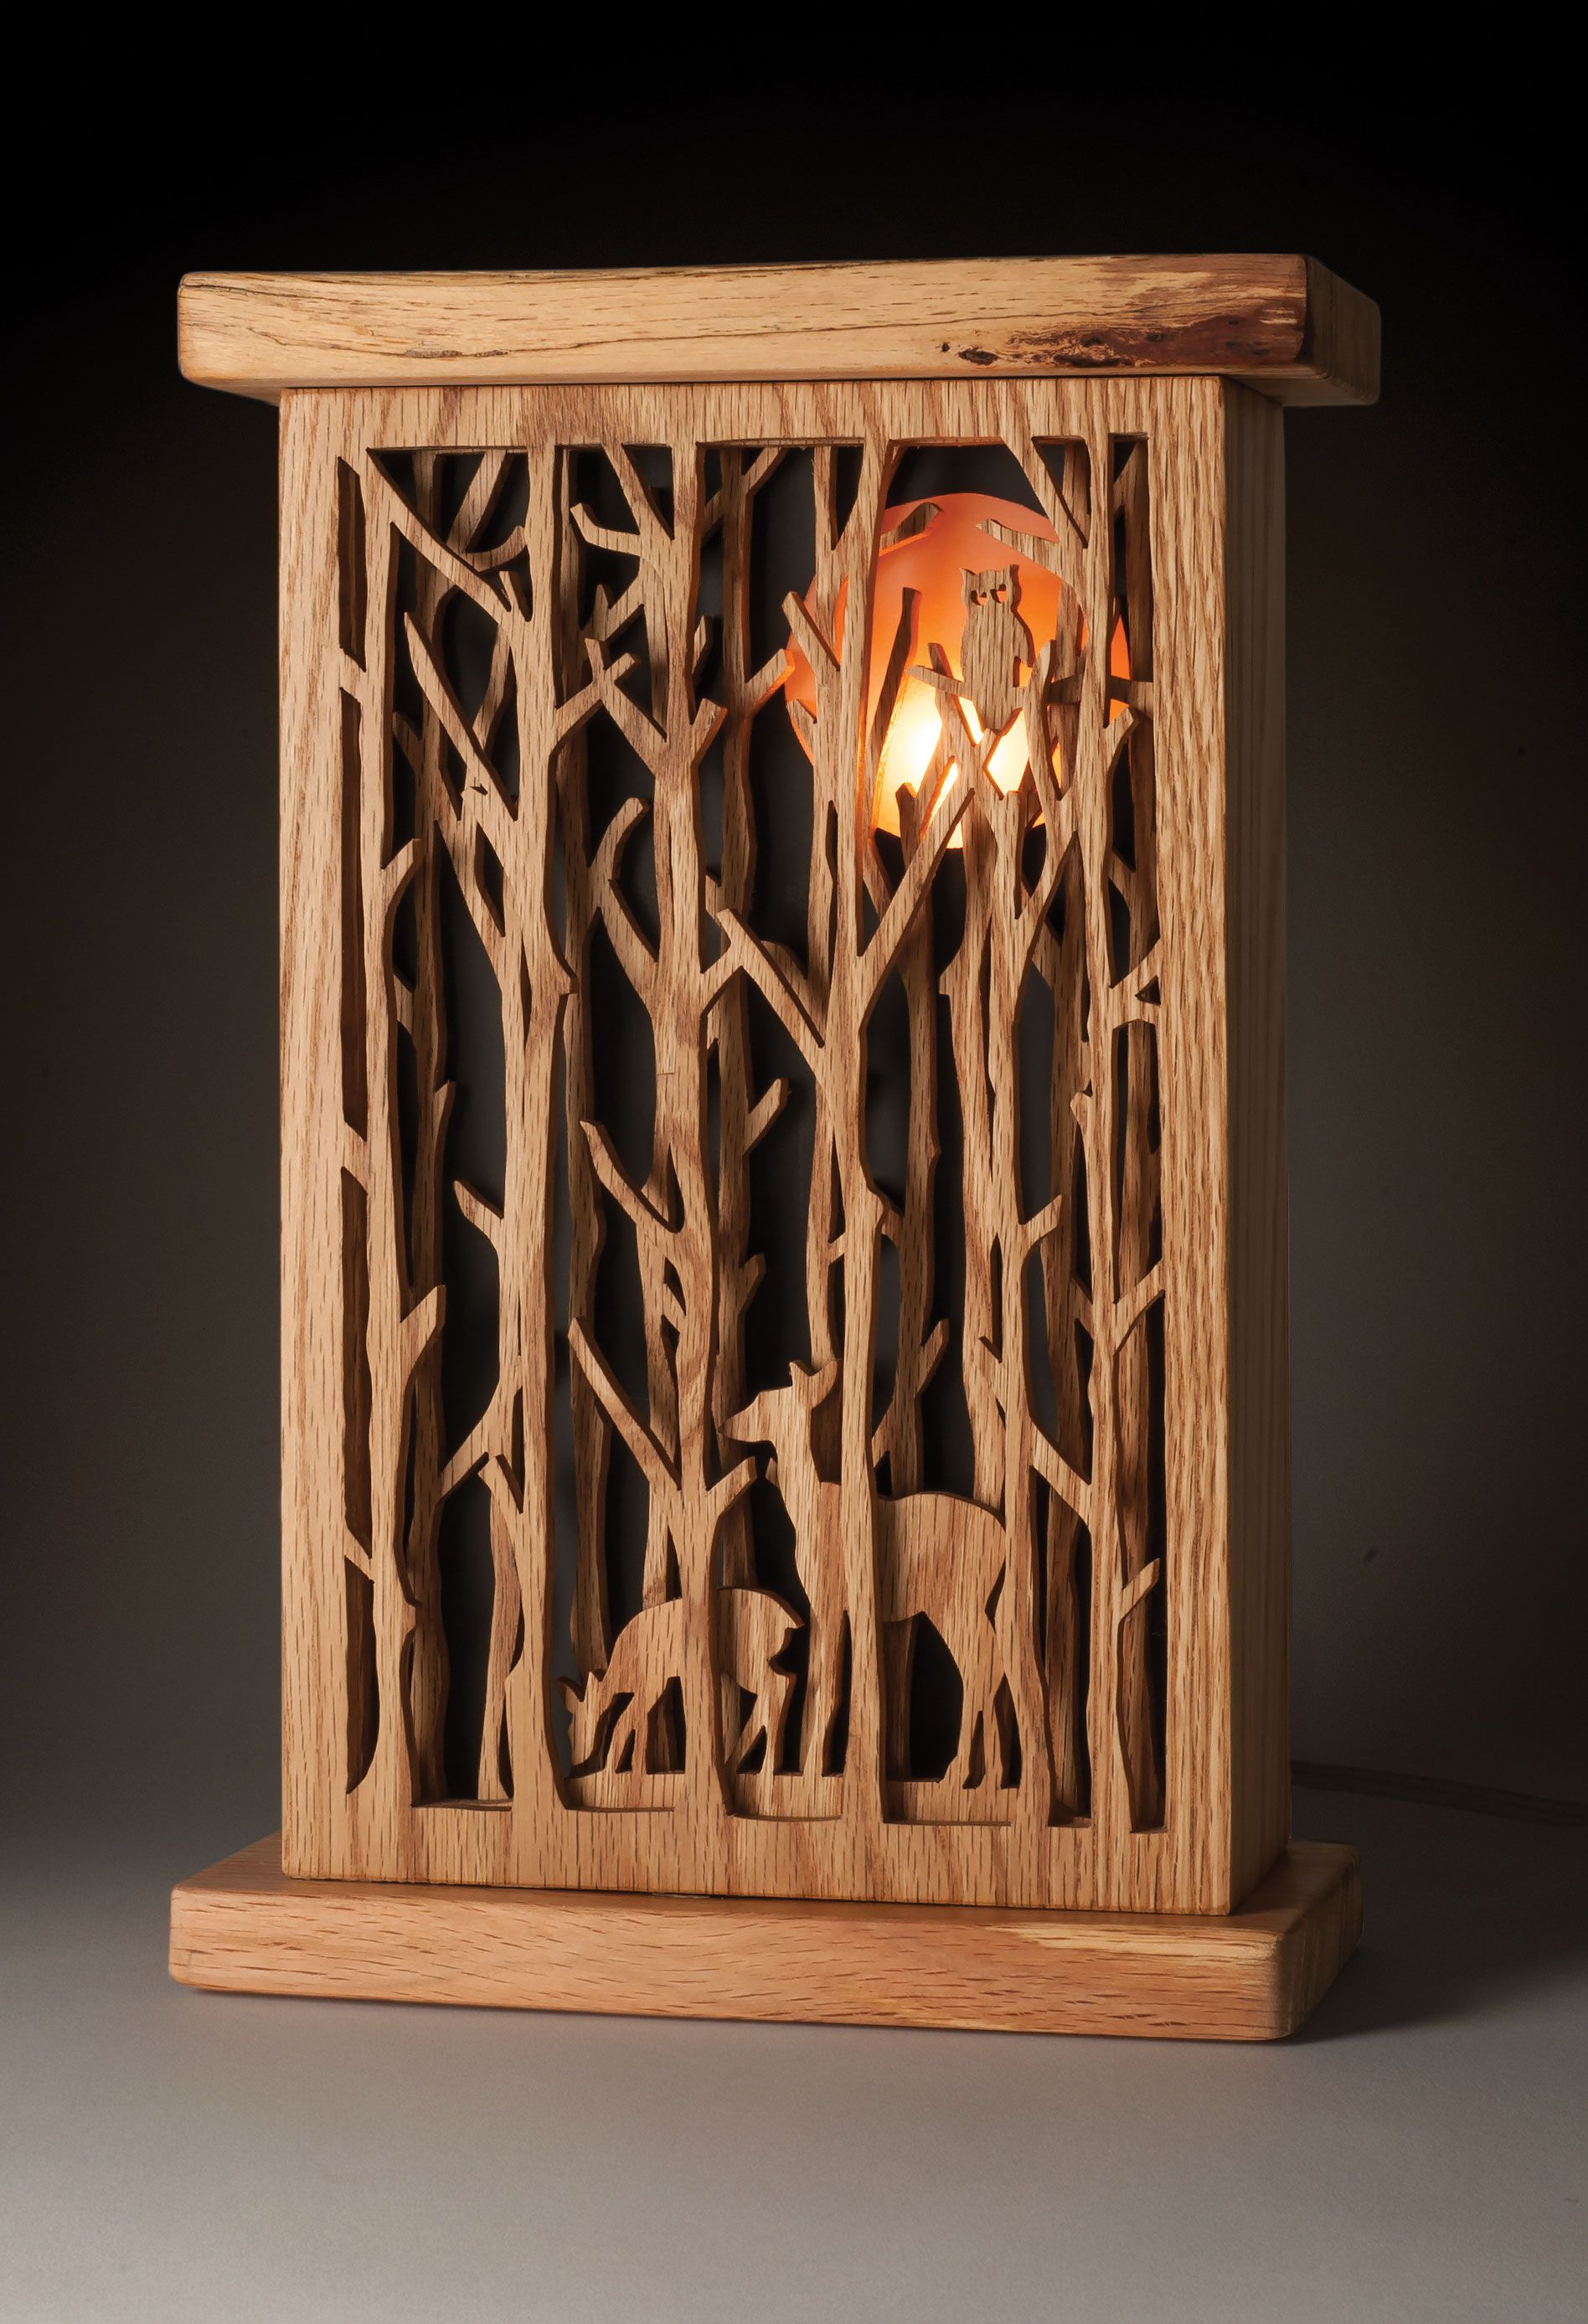 Pin By Carrie Farley On Woodworking Pinterest Woodworking